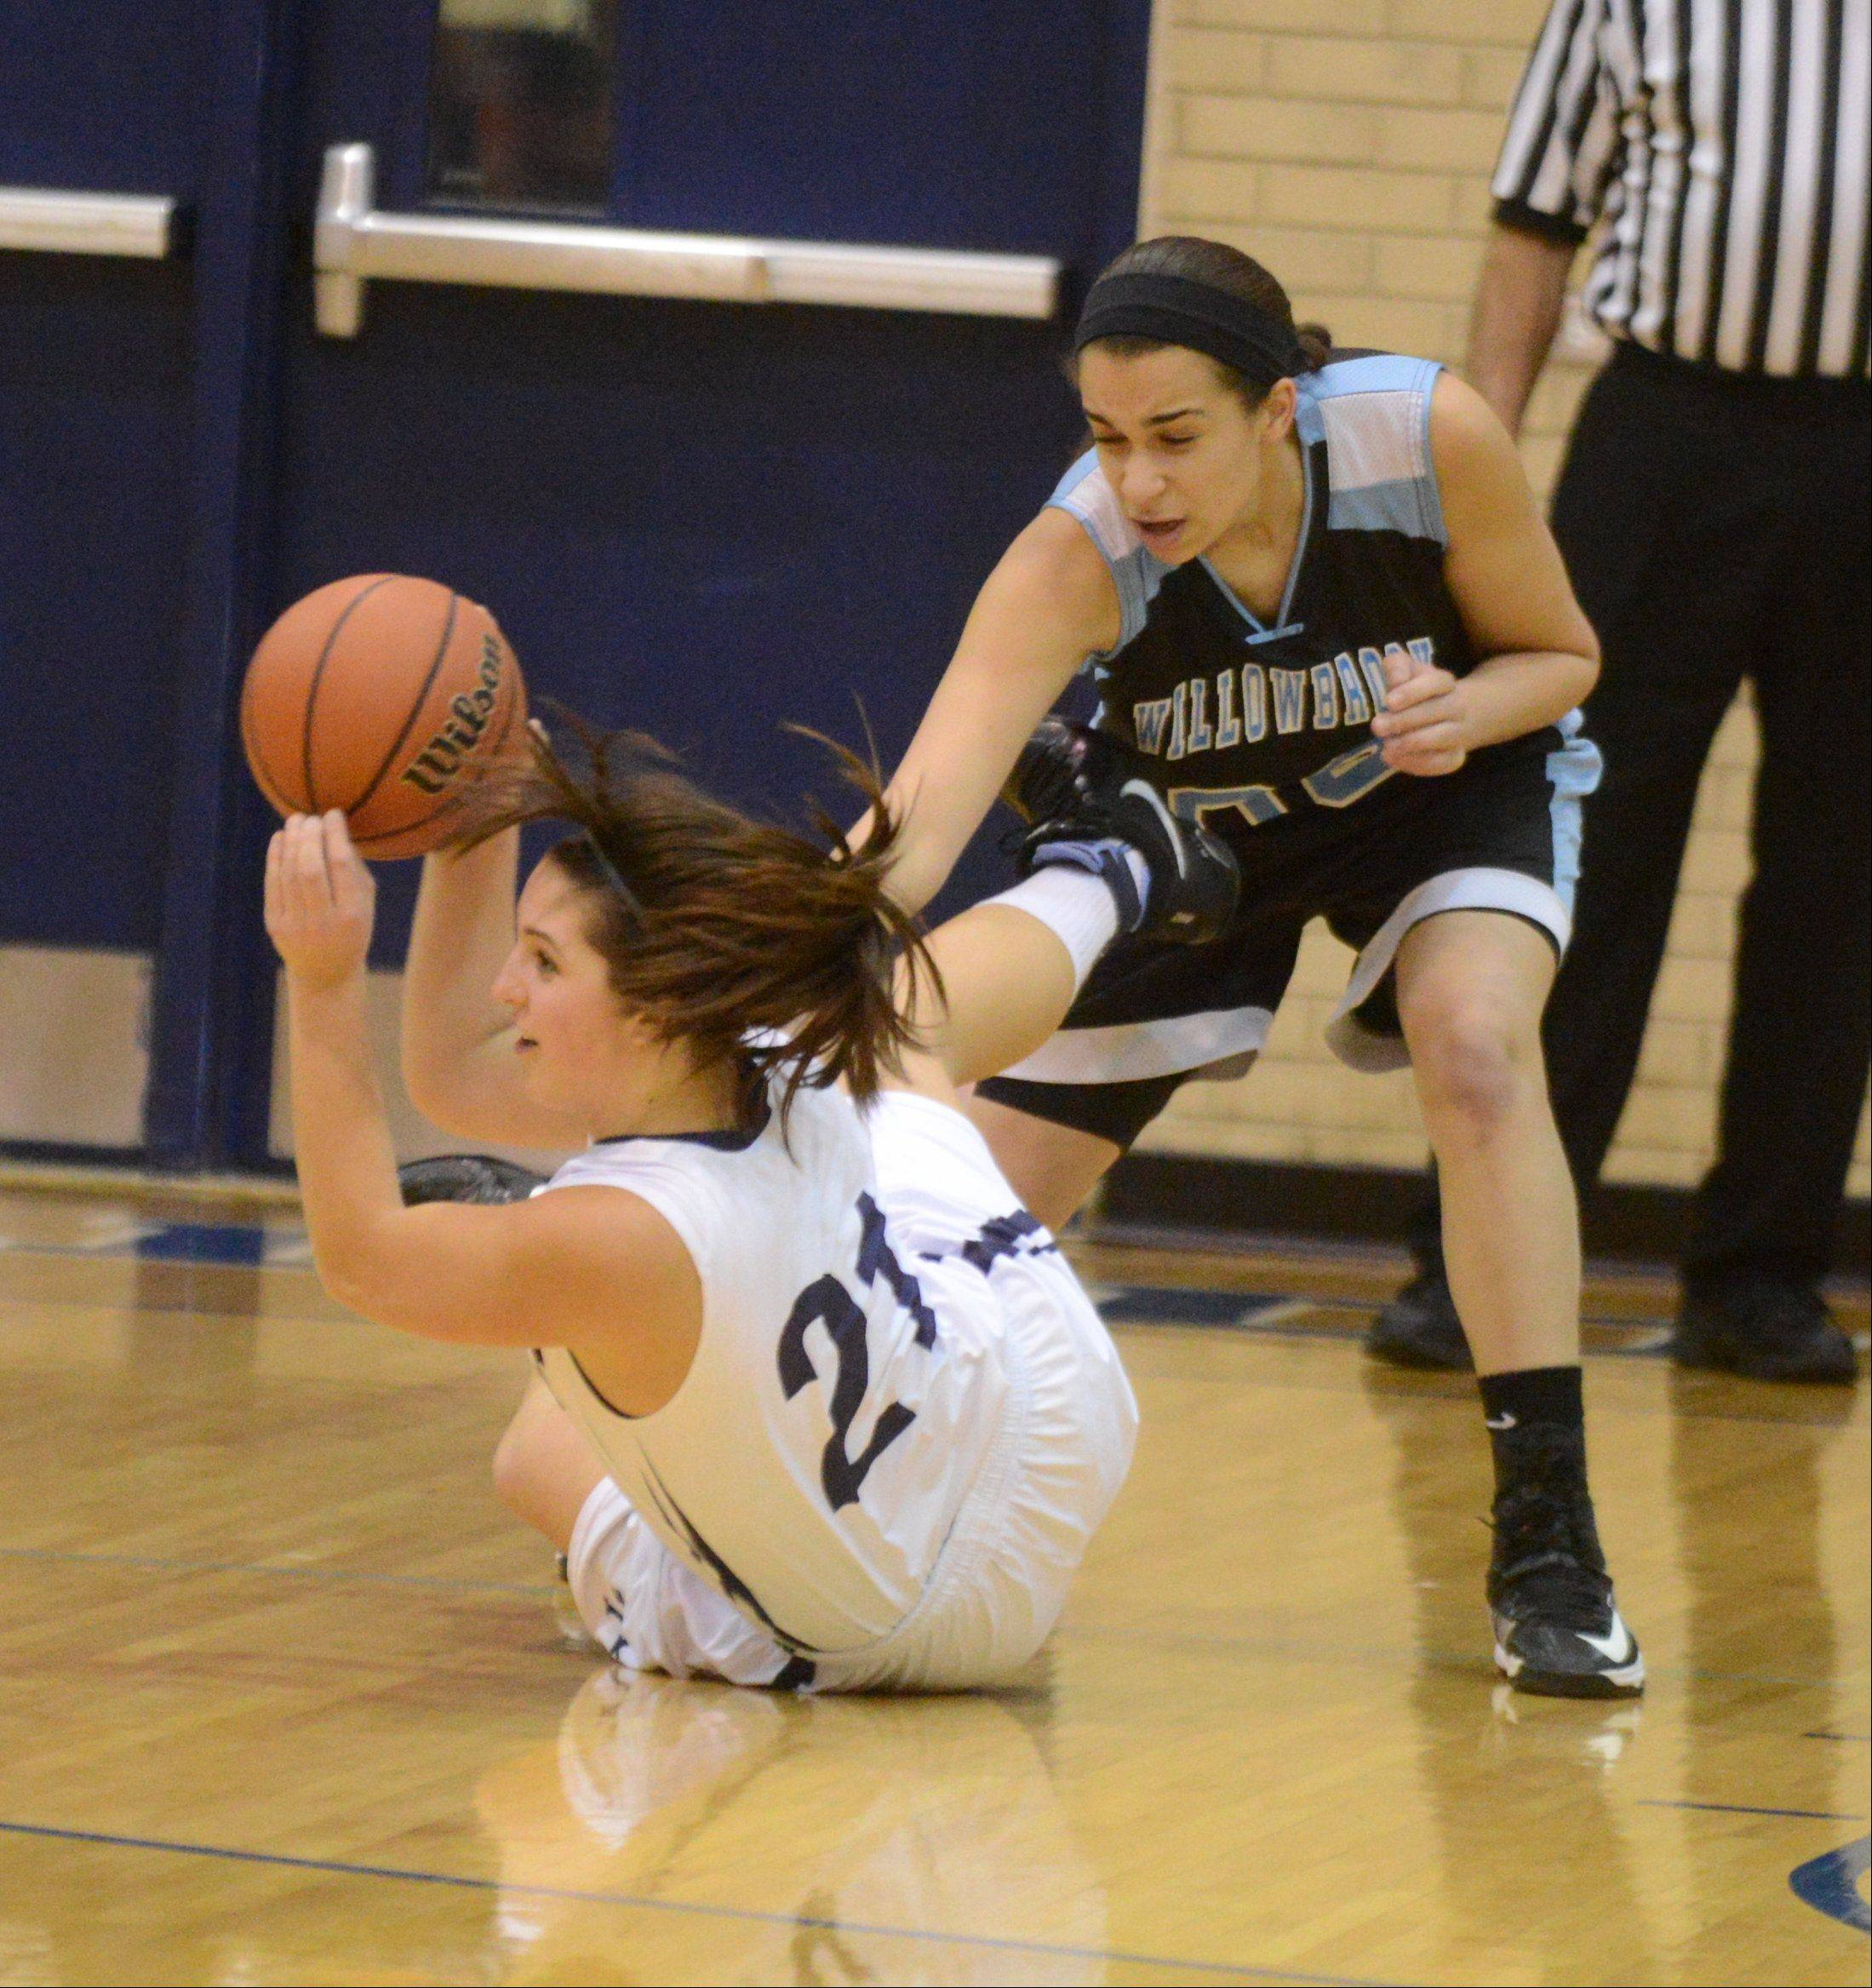 Addison Trail hosted Willowbrook Thursday night for girls basketball.